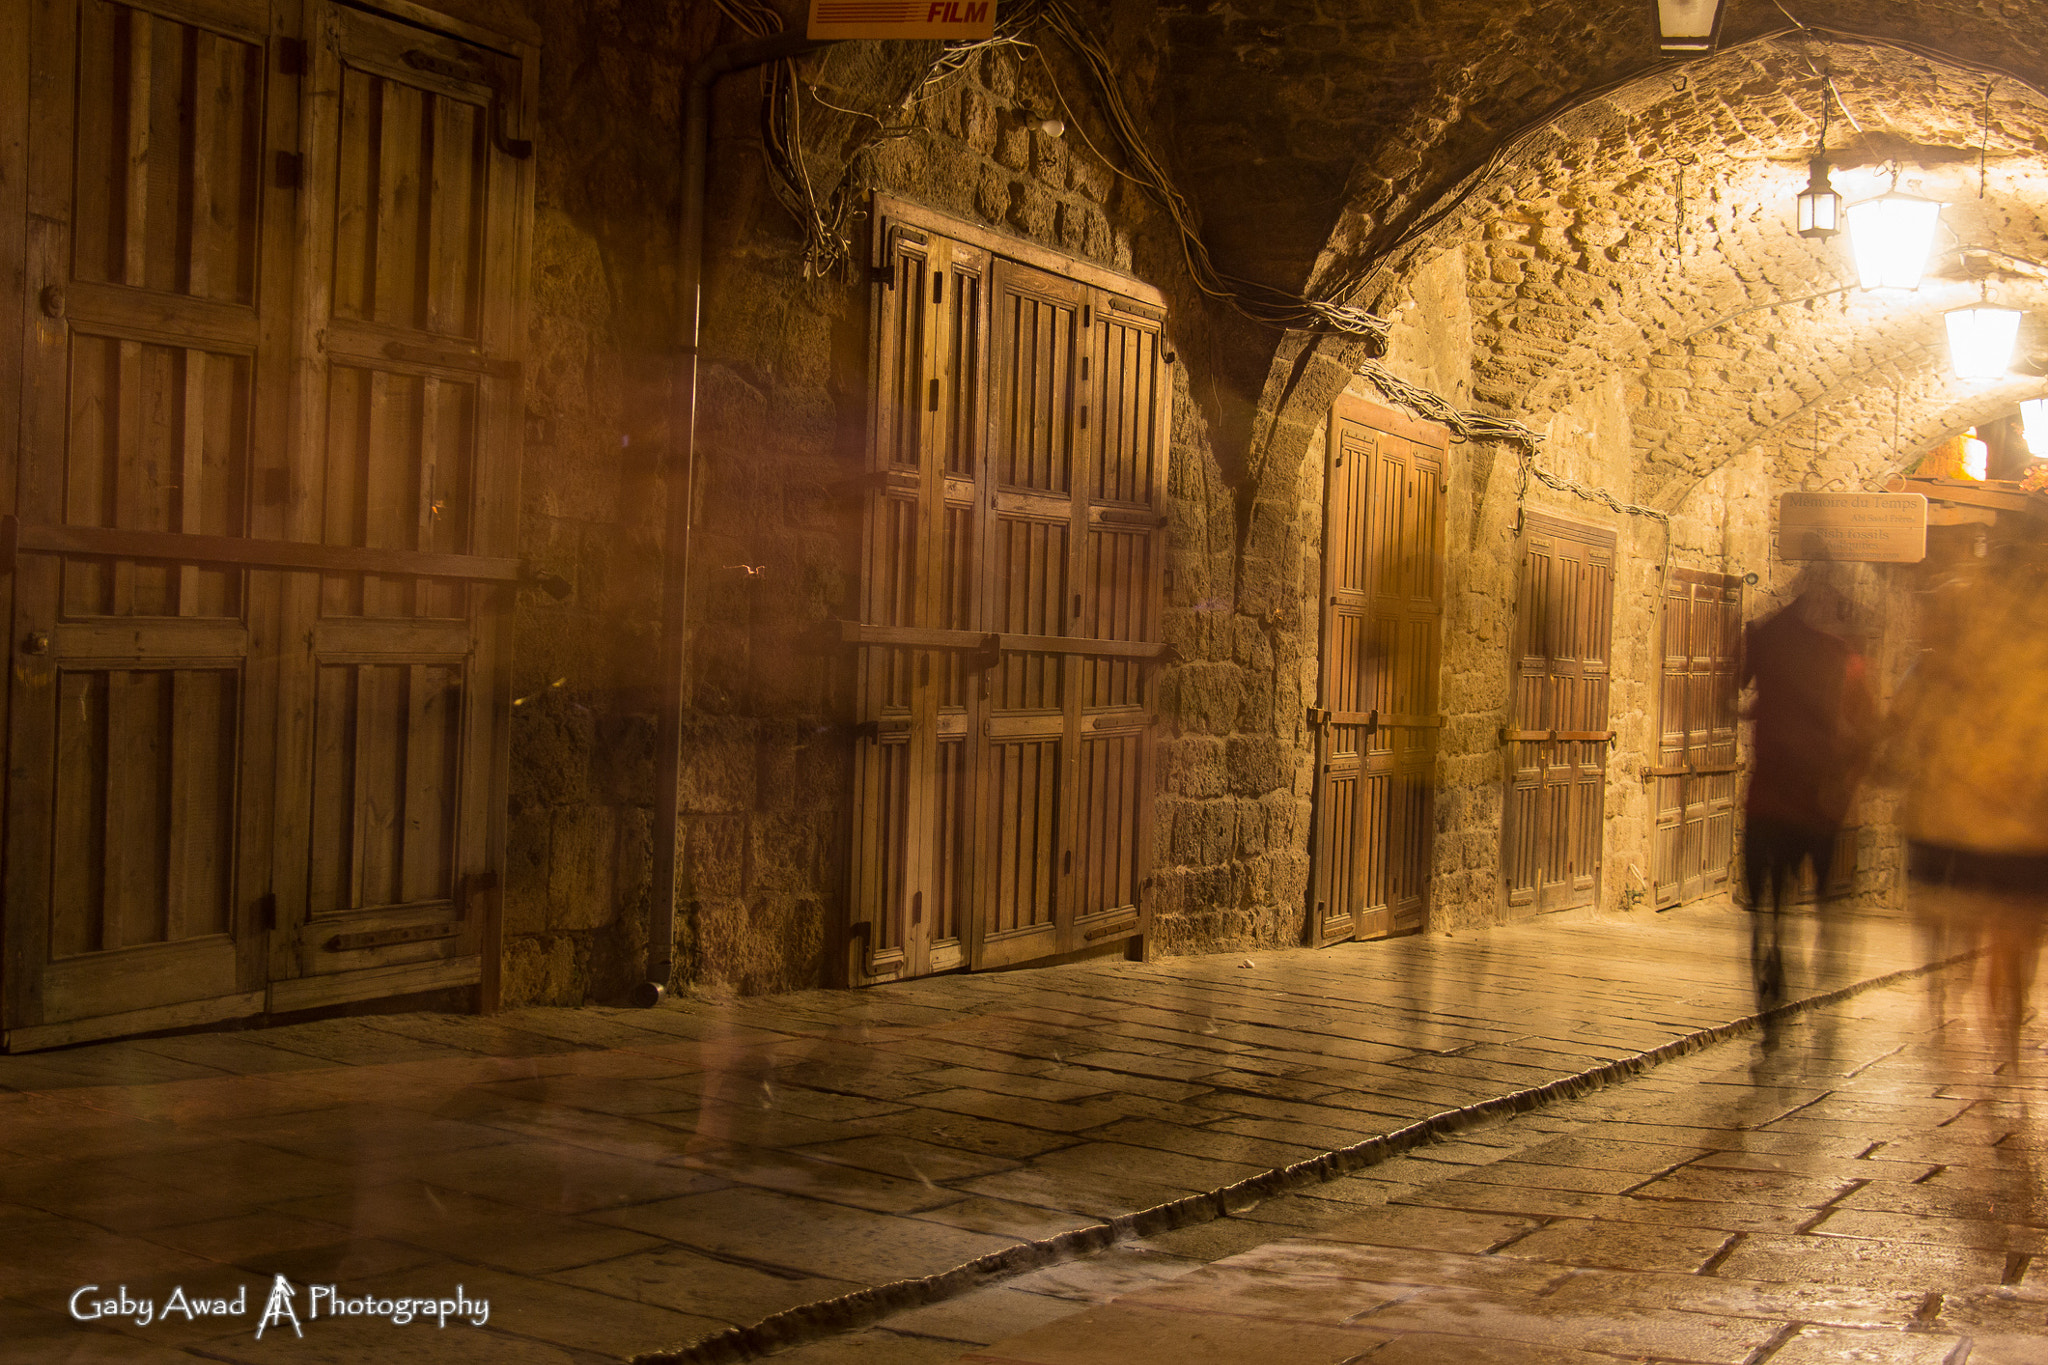 Photograph Phantoms of the Souks by Gaby Awad on 500px